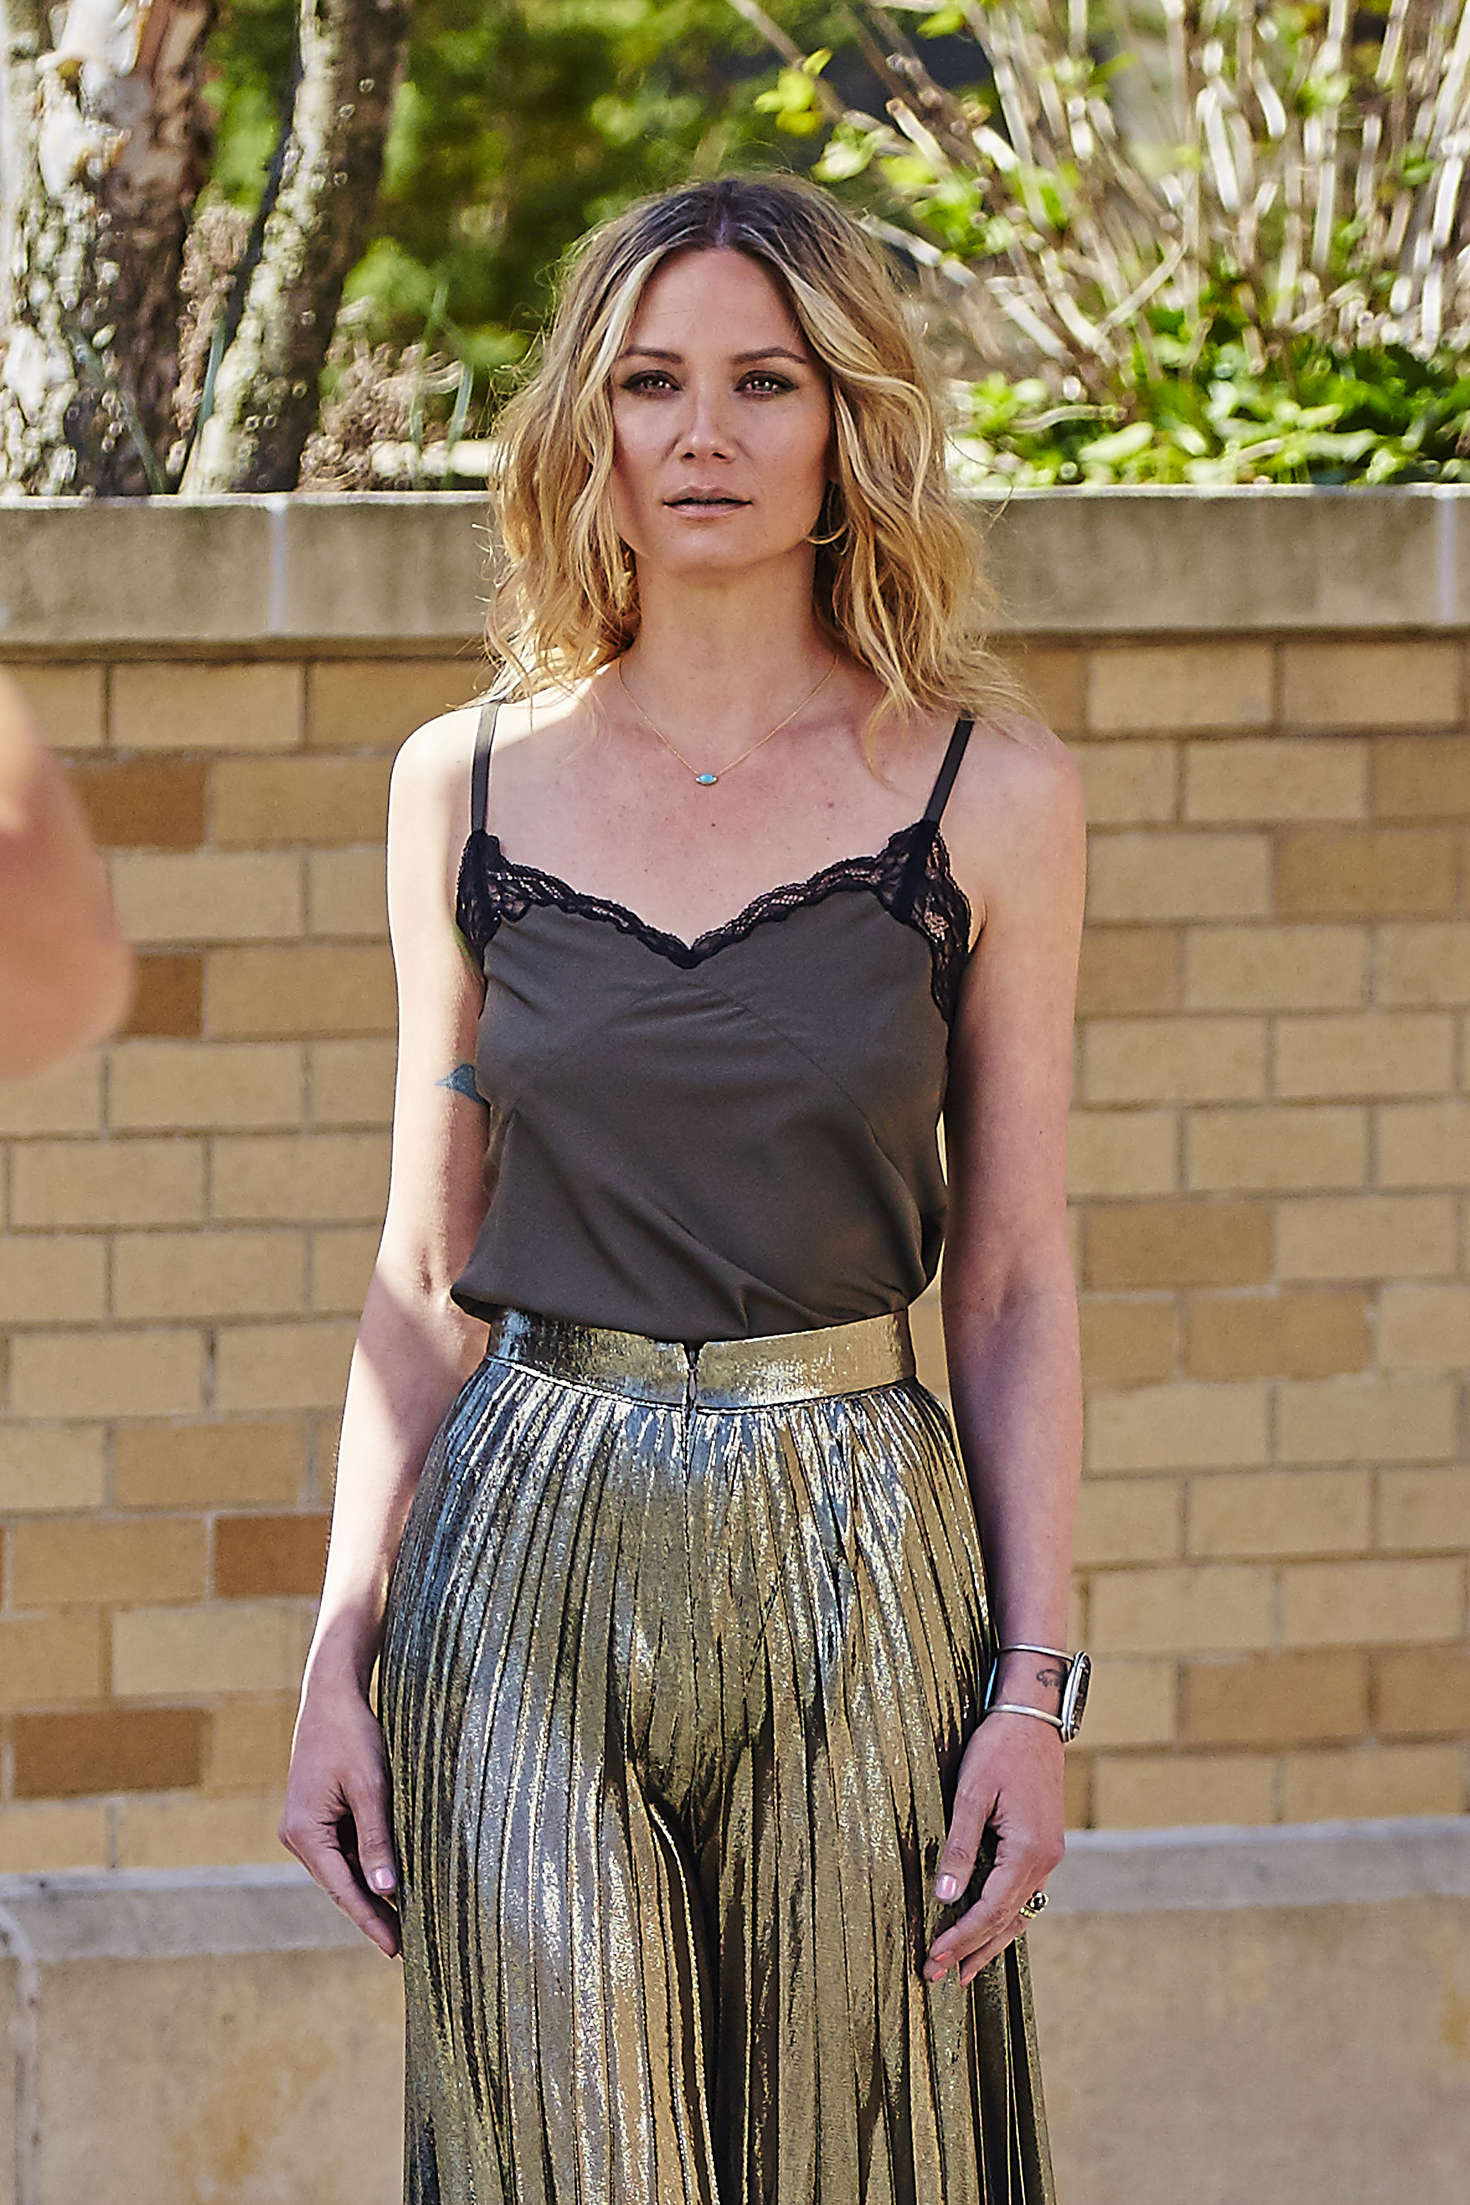 Jennifer Nettles at a Photoshoot in New York